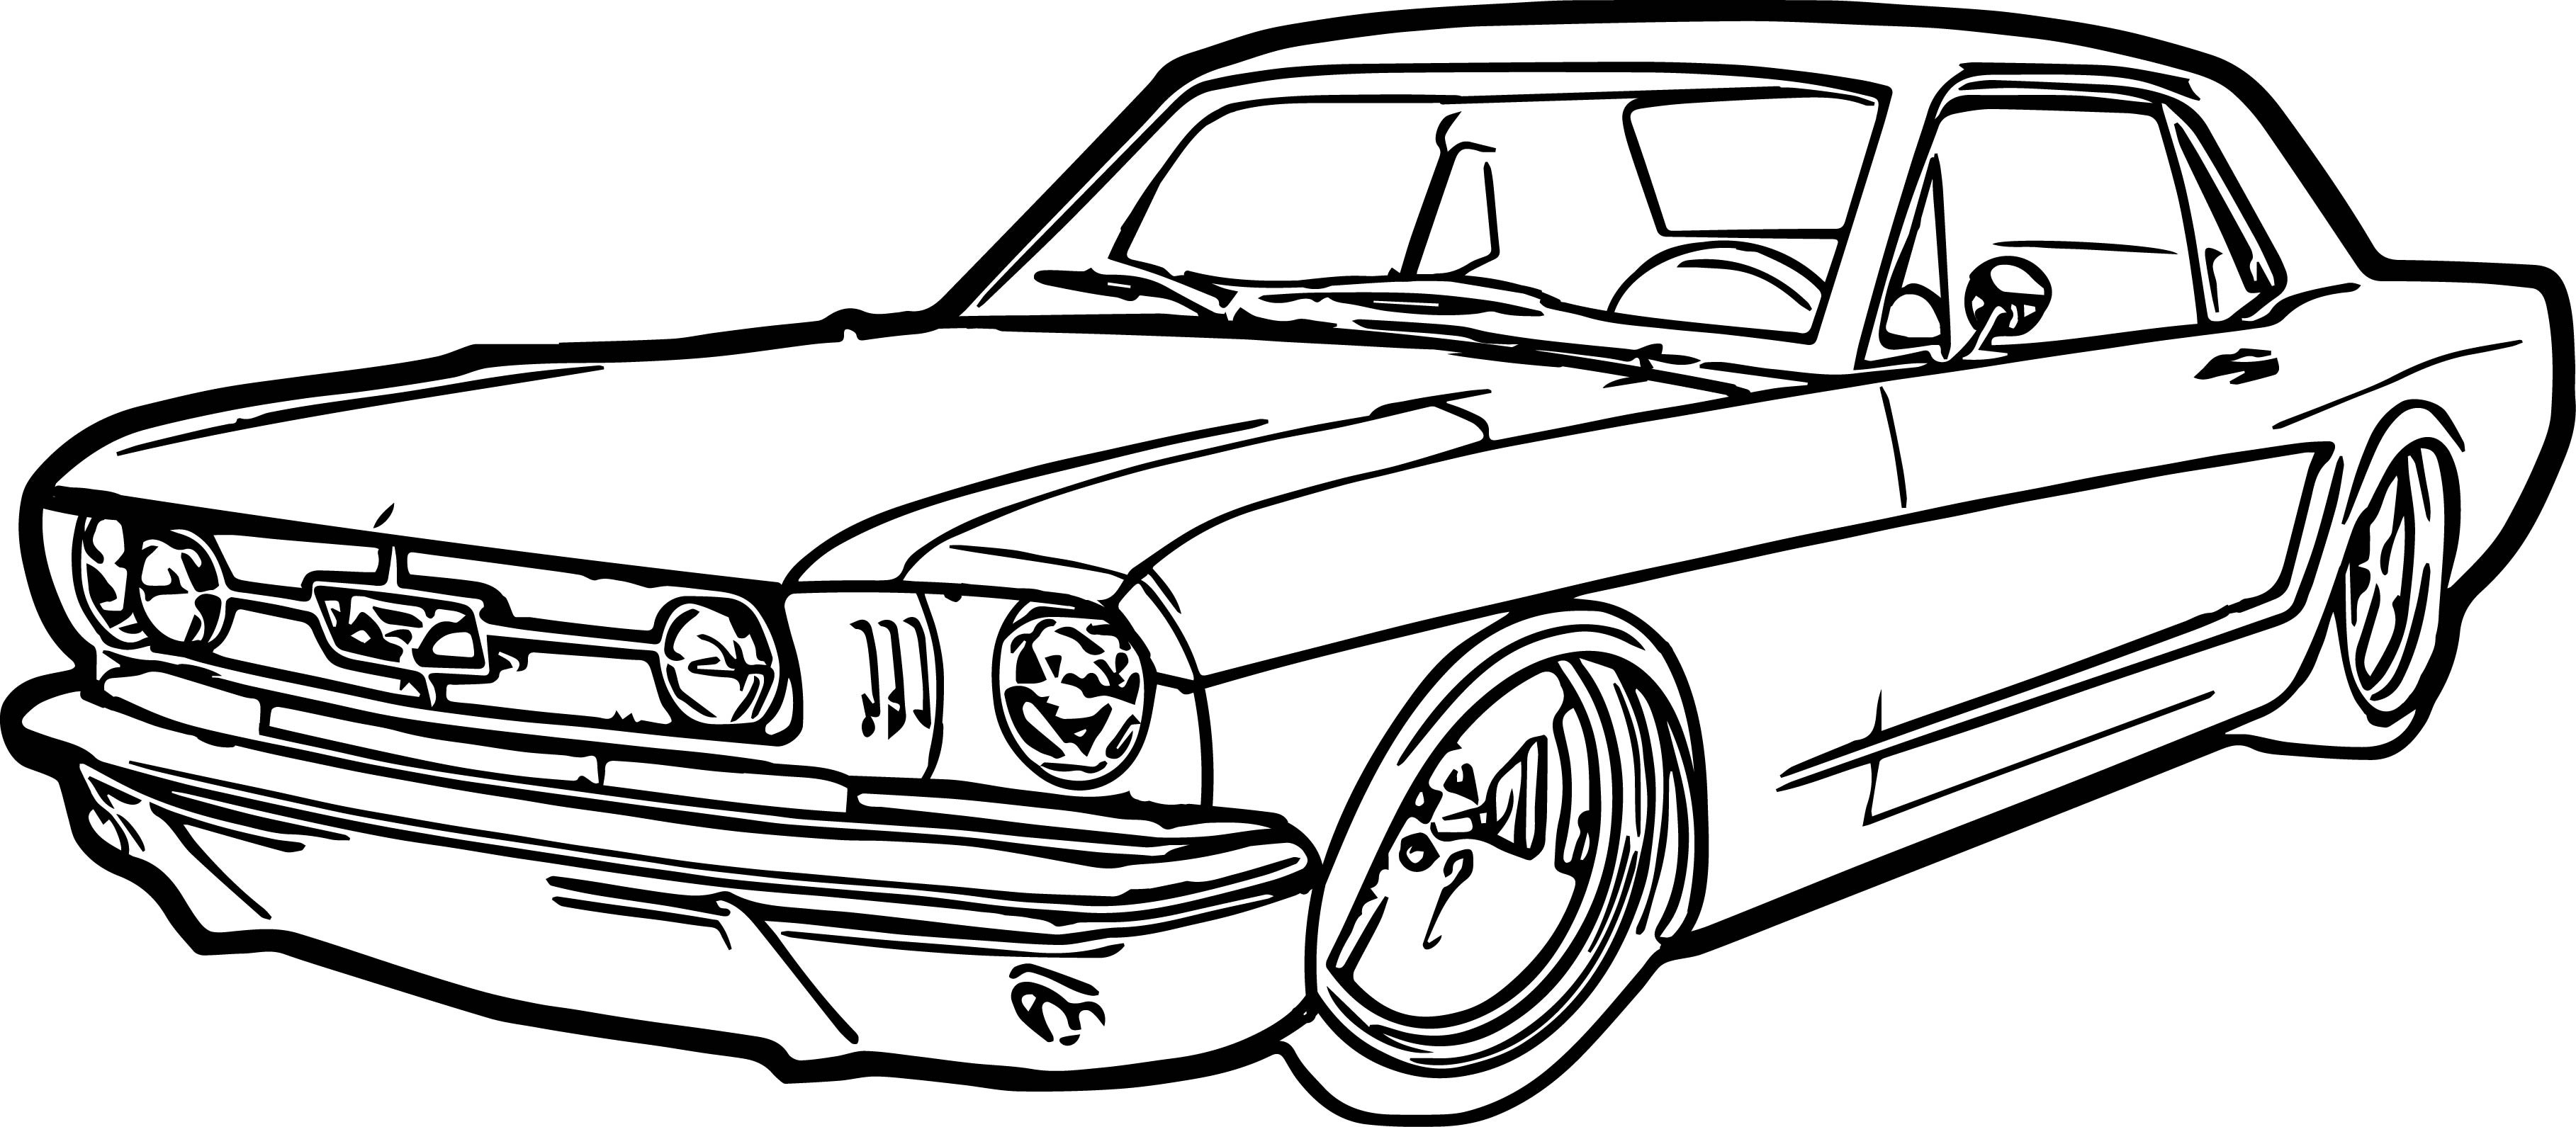 hard car coloring pages hot rod coloring pages to print download free coloring car pages hard coloring